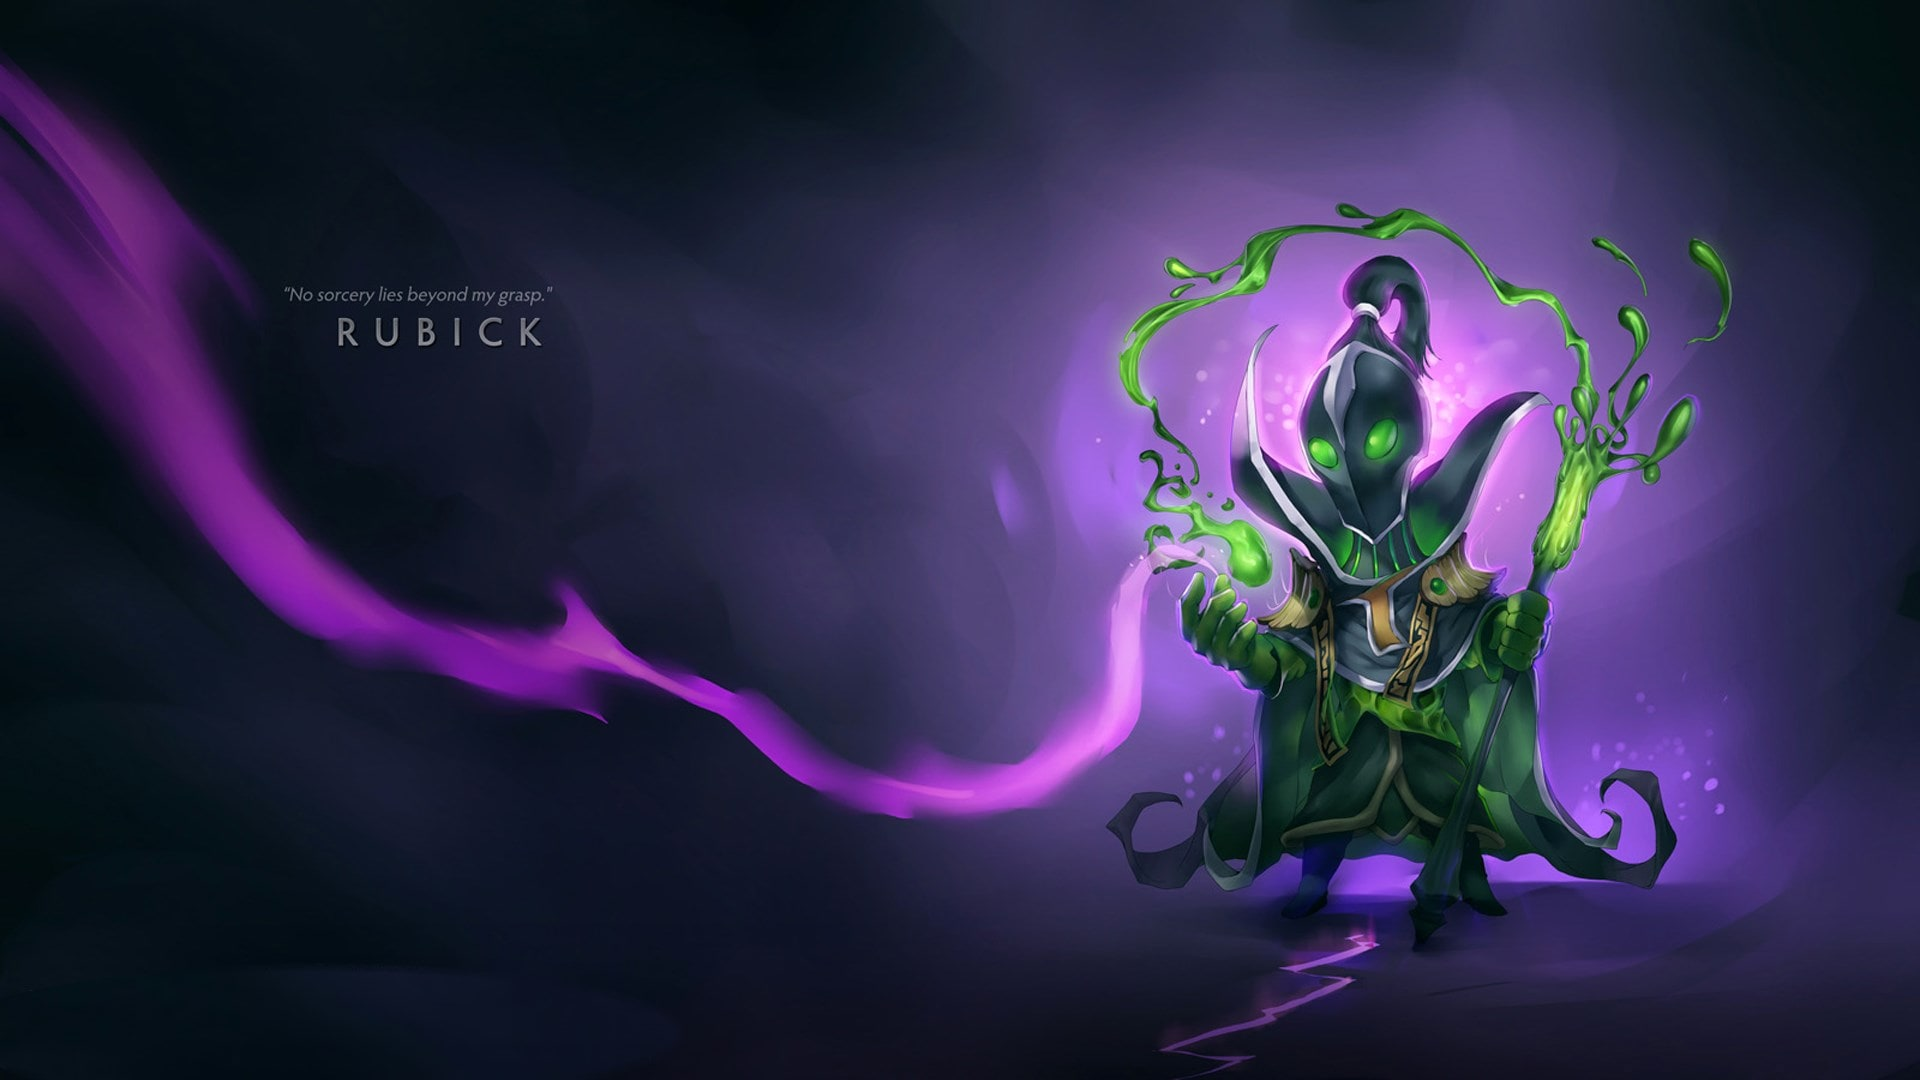 Dota2 : Rubick desktop wallpaper